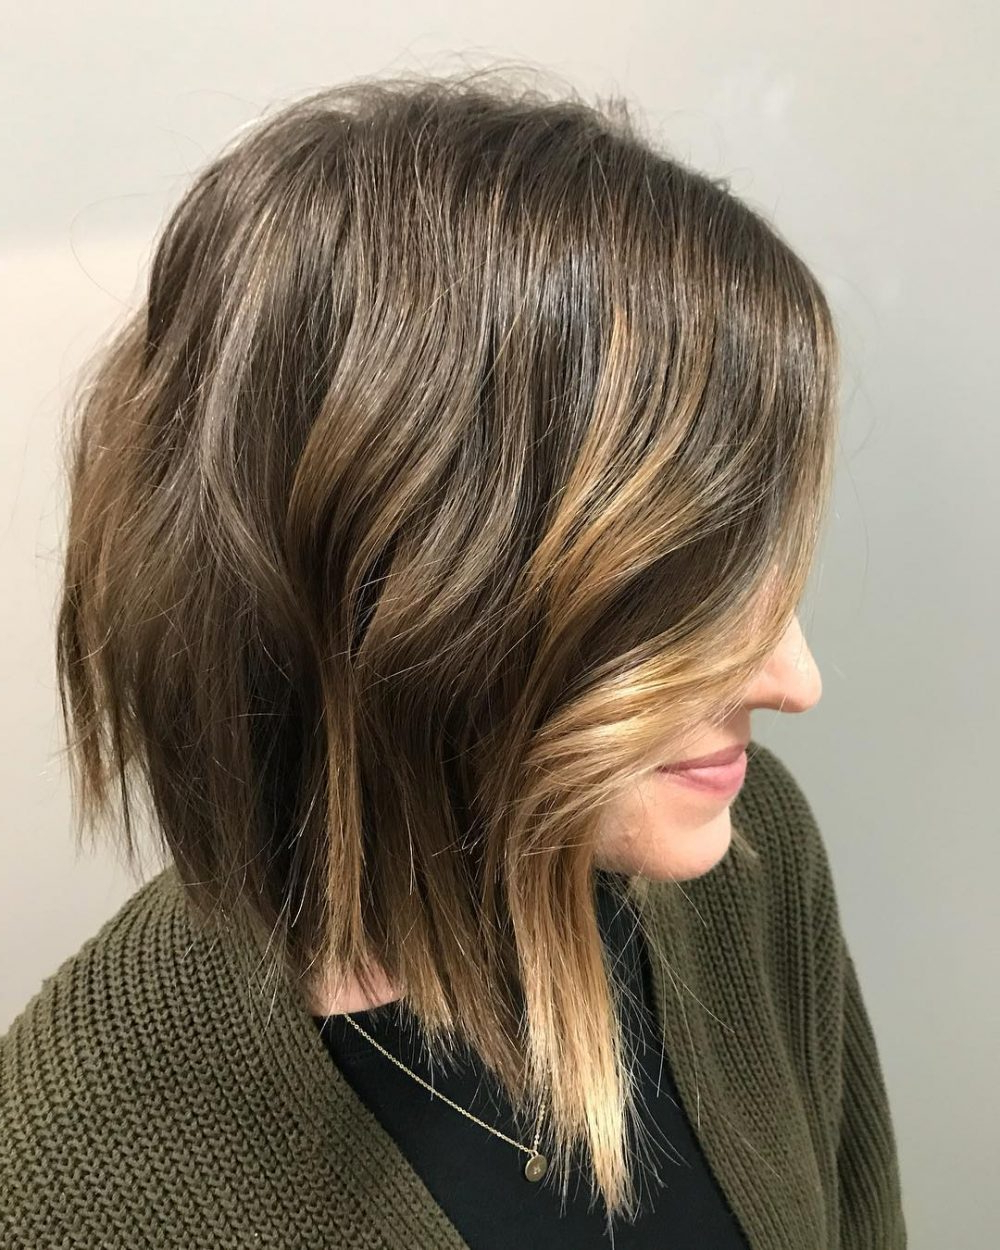 45 Chic Choppy Bob Hairstyles For 2018 With Regard To Choppy Brown And Lavender Bob Hairstyles (View 12 of 20)